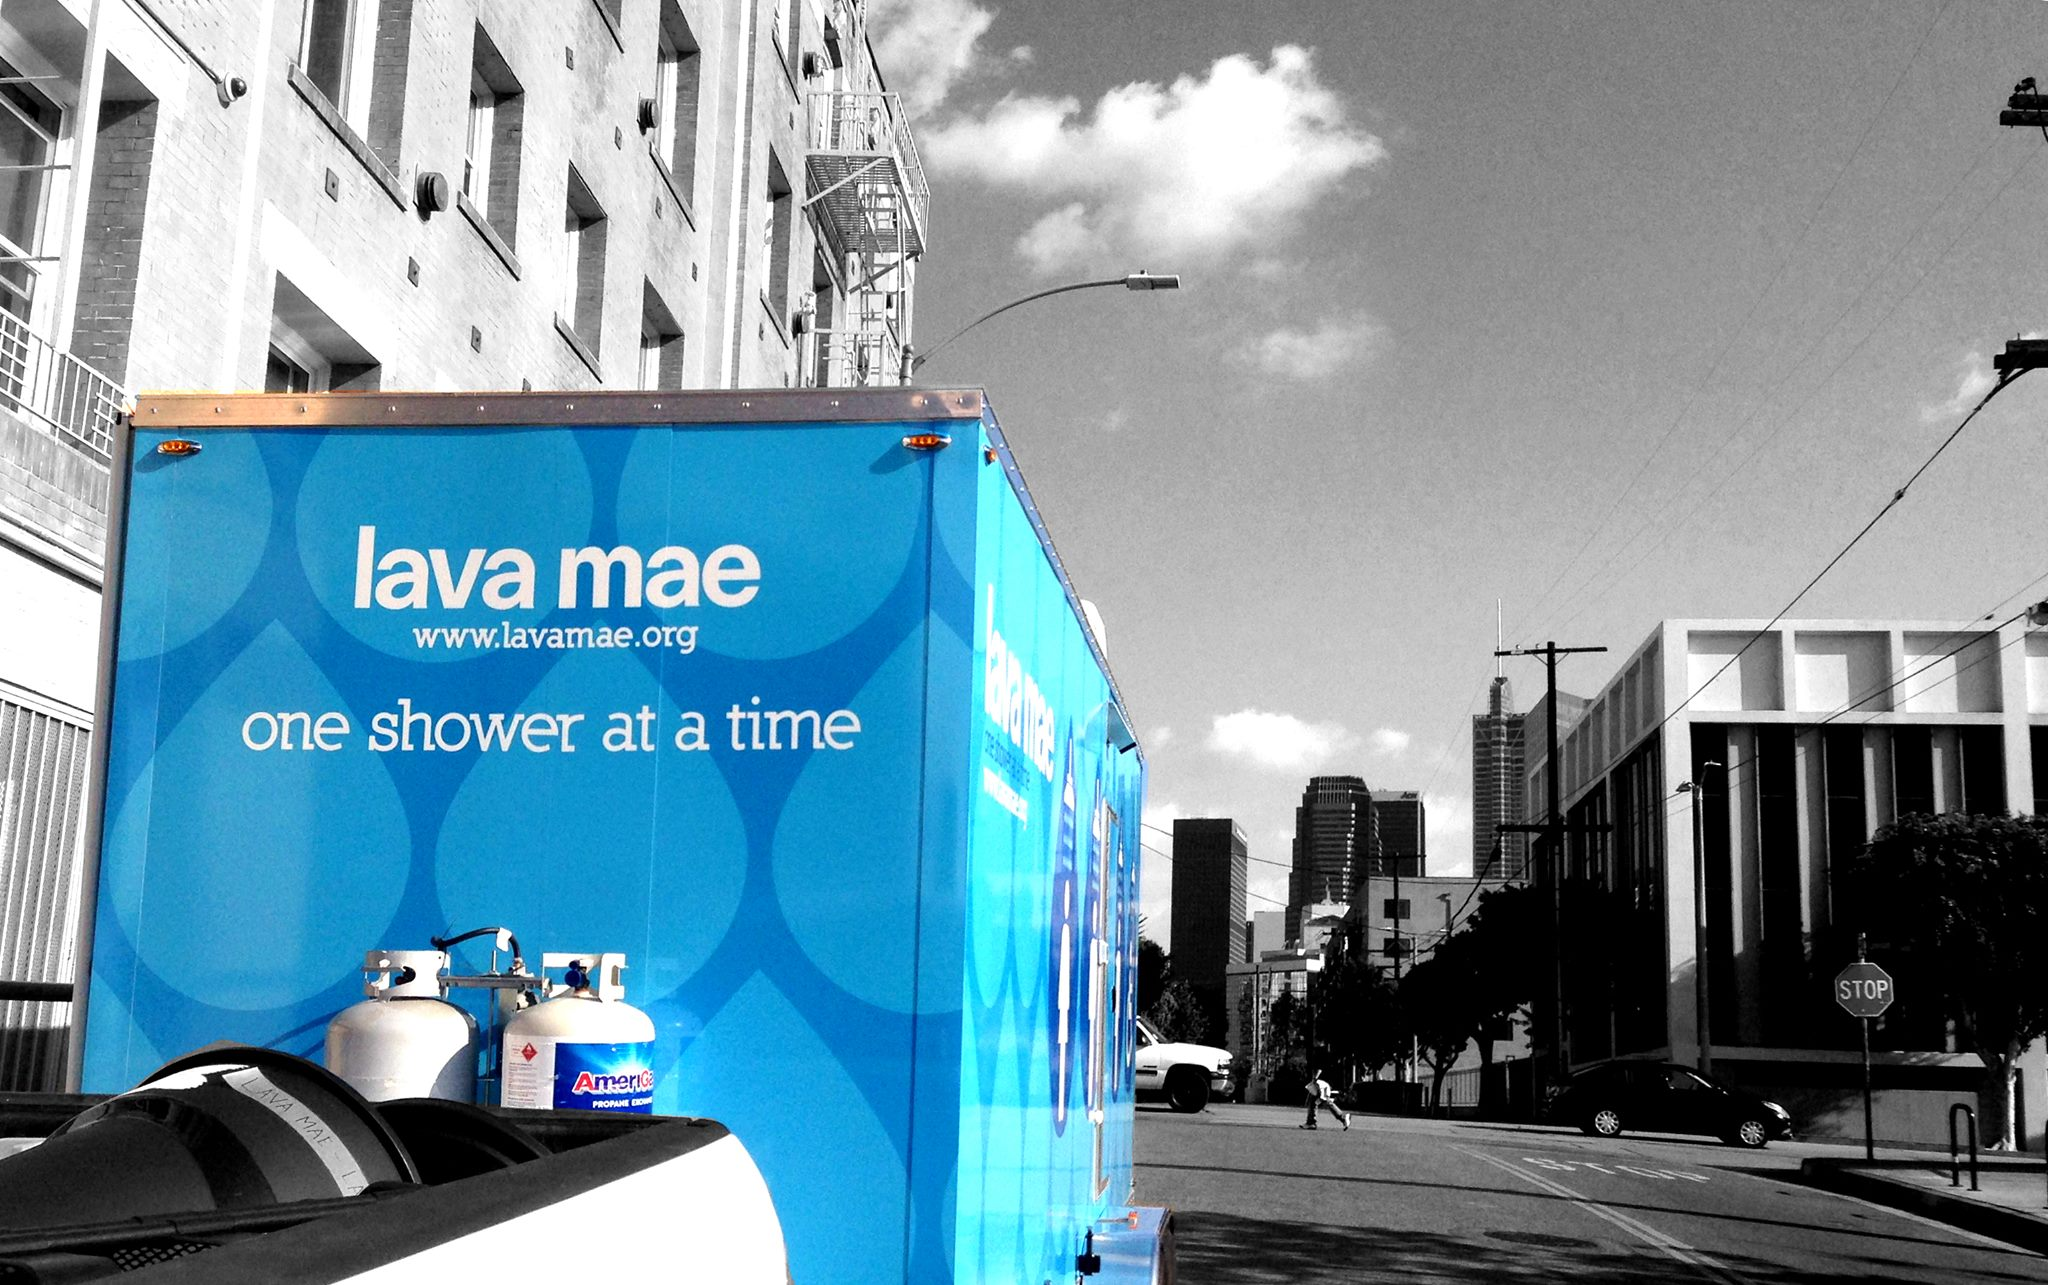 Lava Mae Expands Showers For Homeless - Canyon News